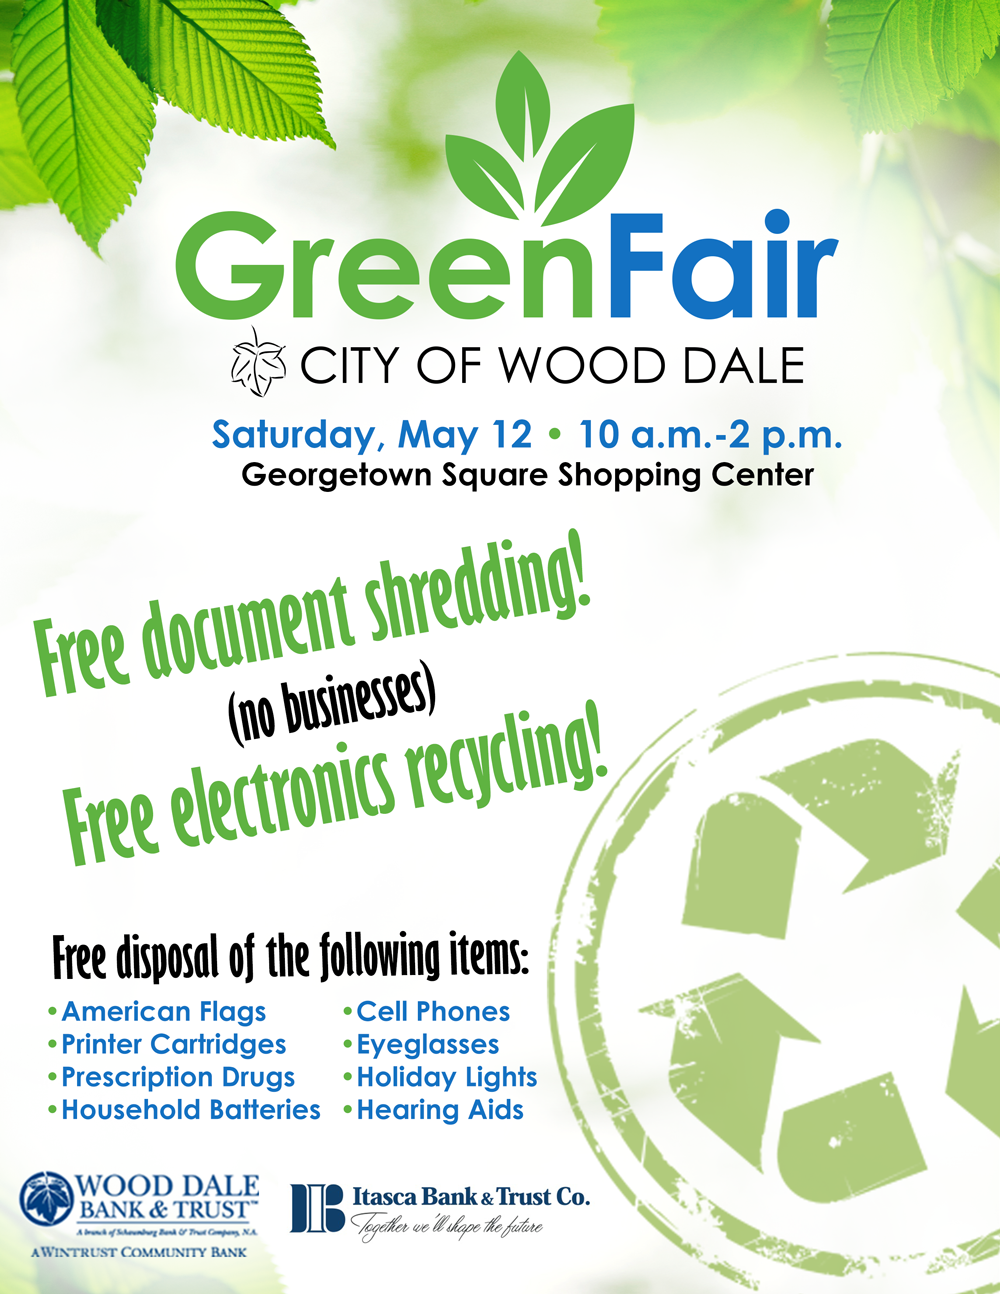 Green Fair 2018 | City of Wood Dale, IL